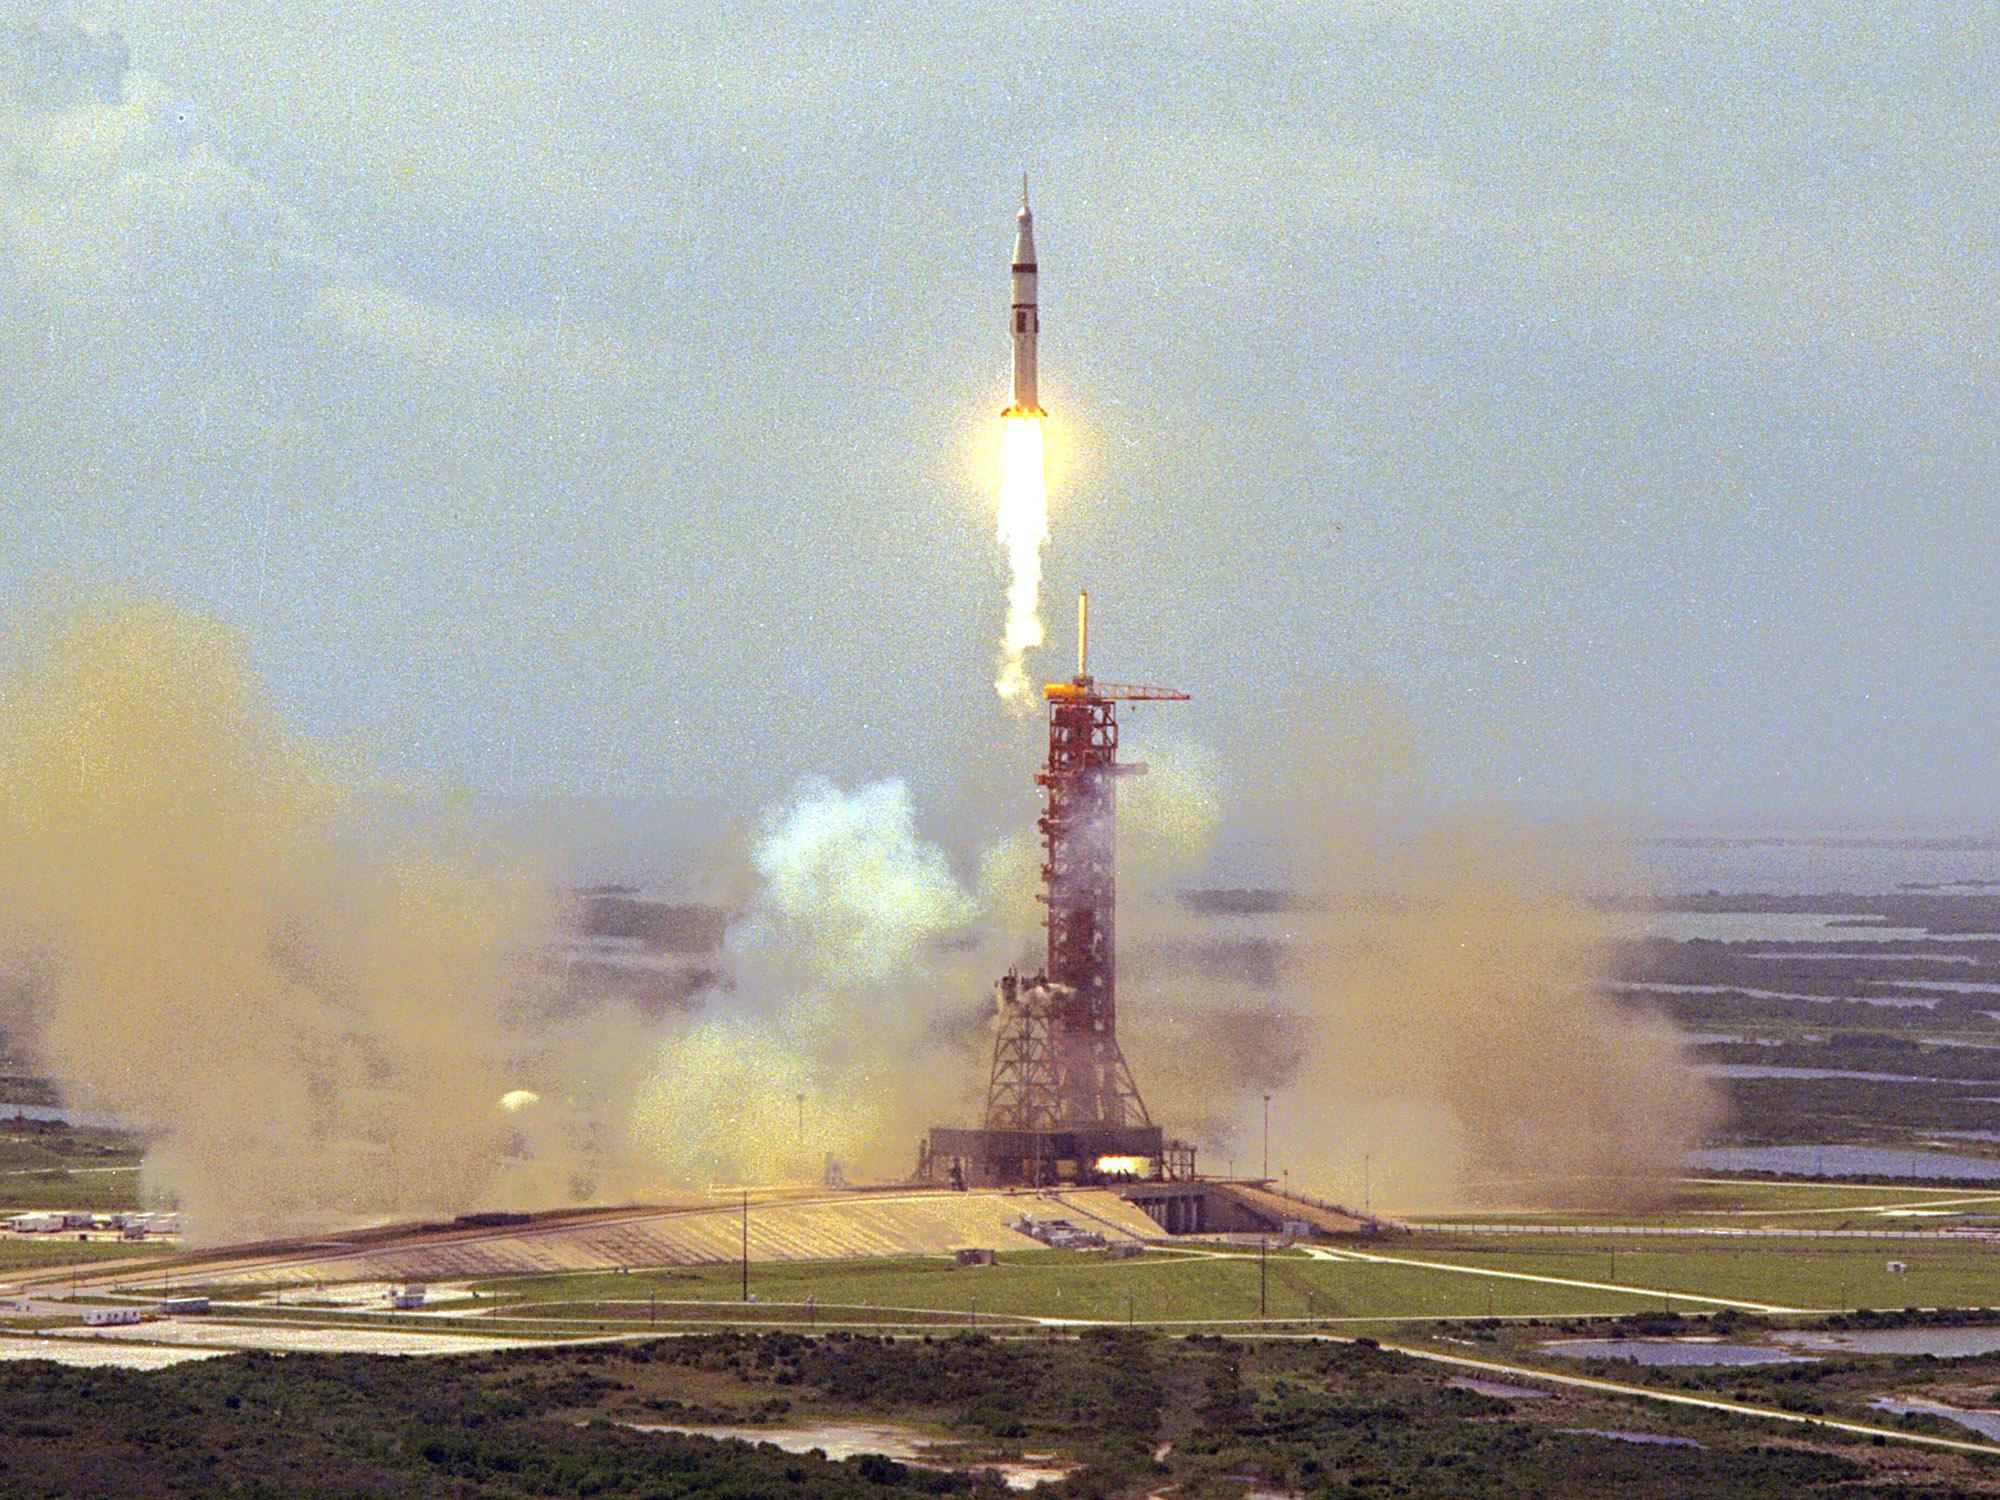 apollo 13 rocket launch - photo #23